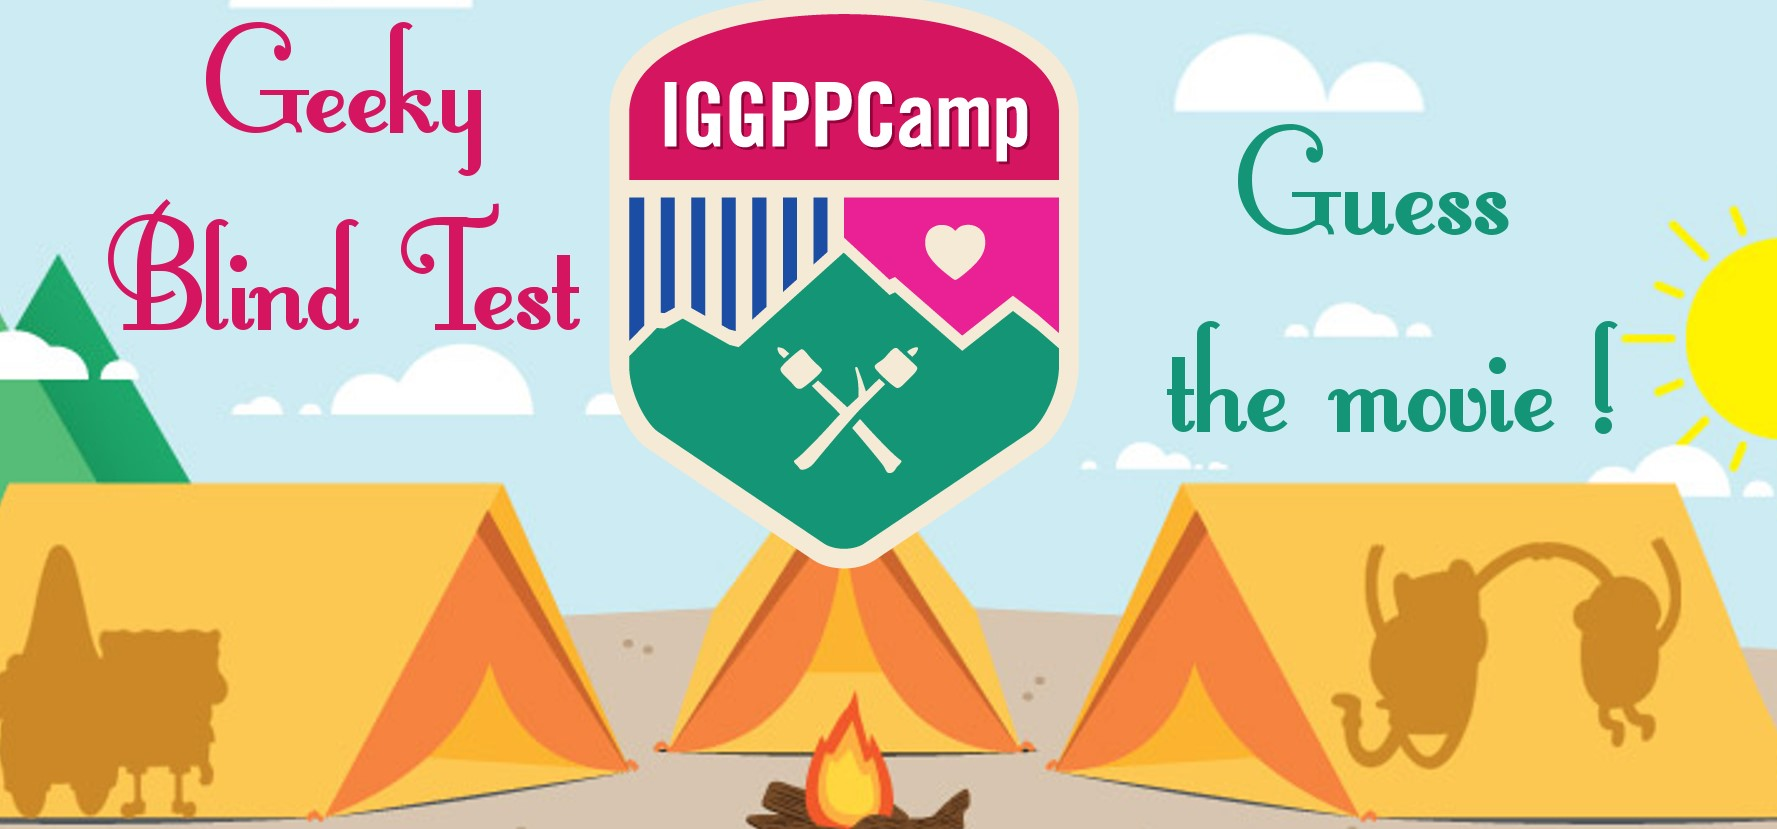 IGGPPCamp 2018: The Revenge of the Geeky Blind Test